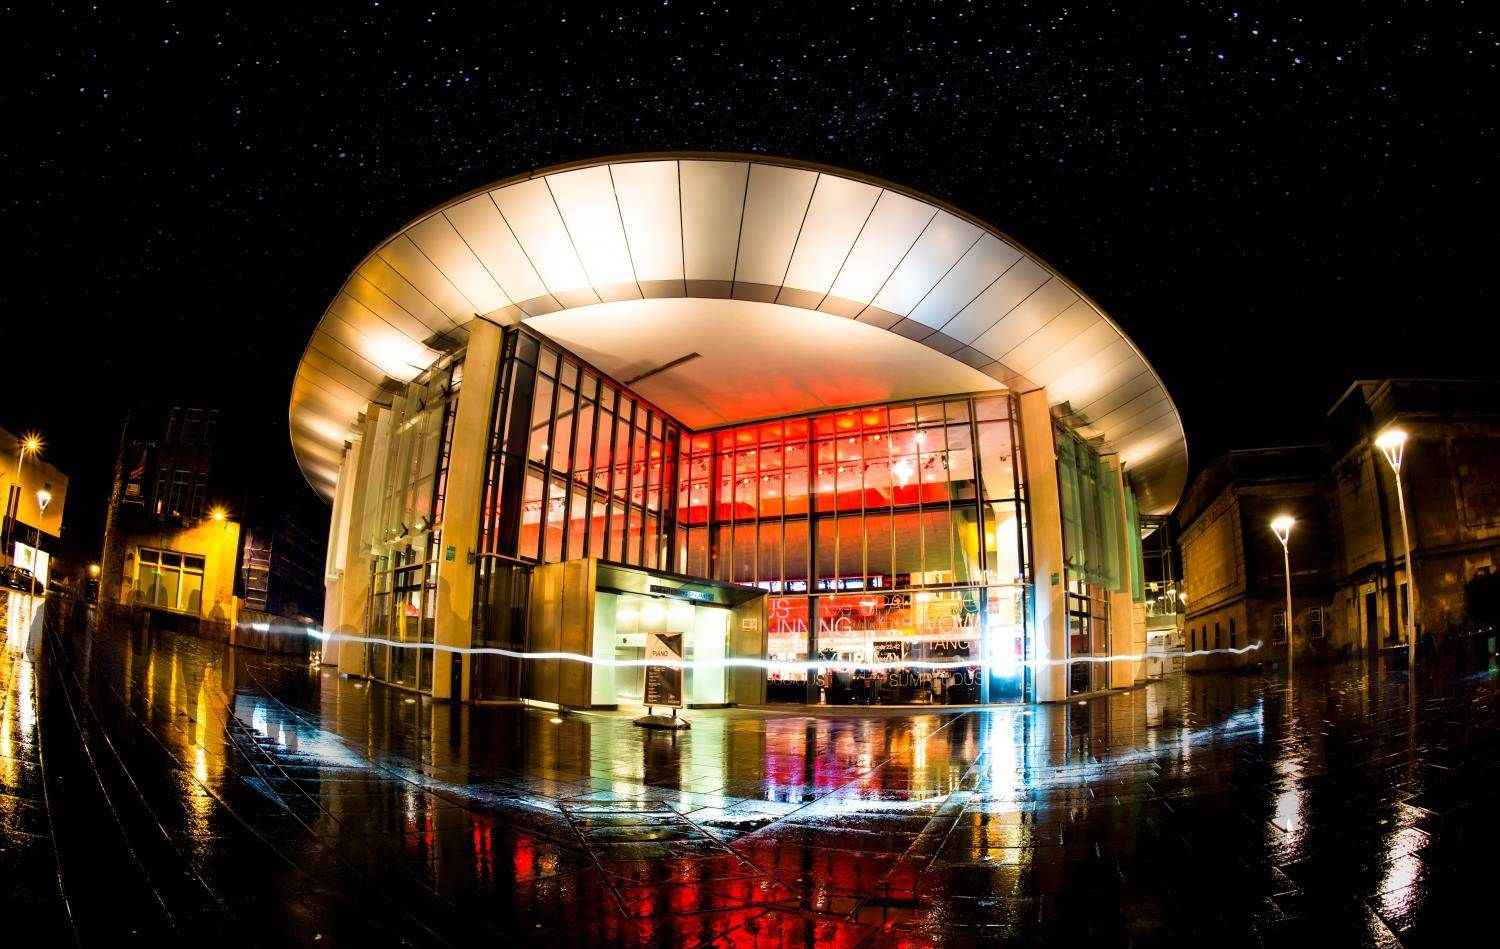 Perth concert hall hosts many great shows and events for